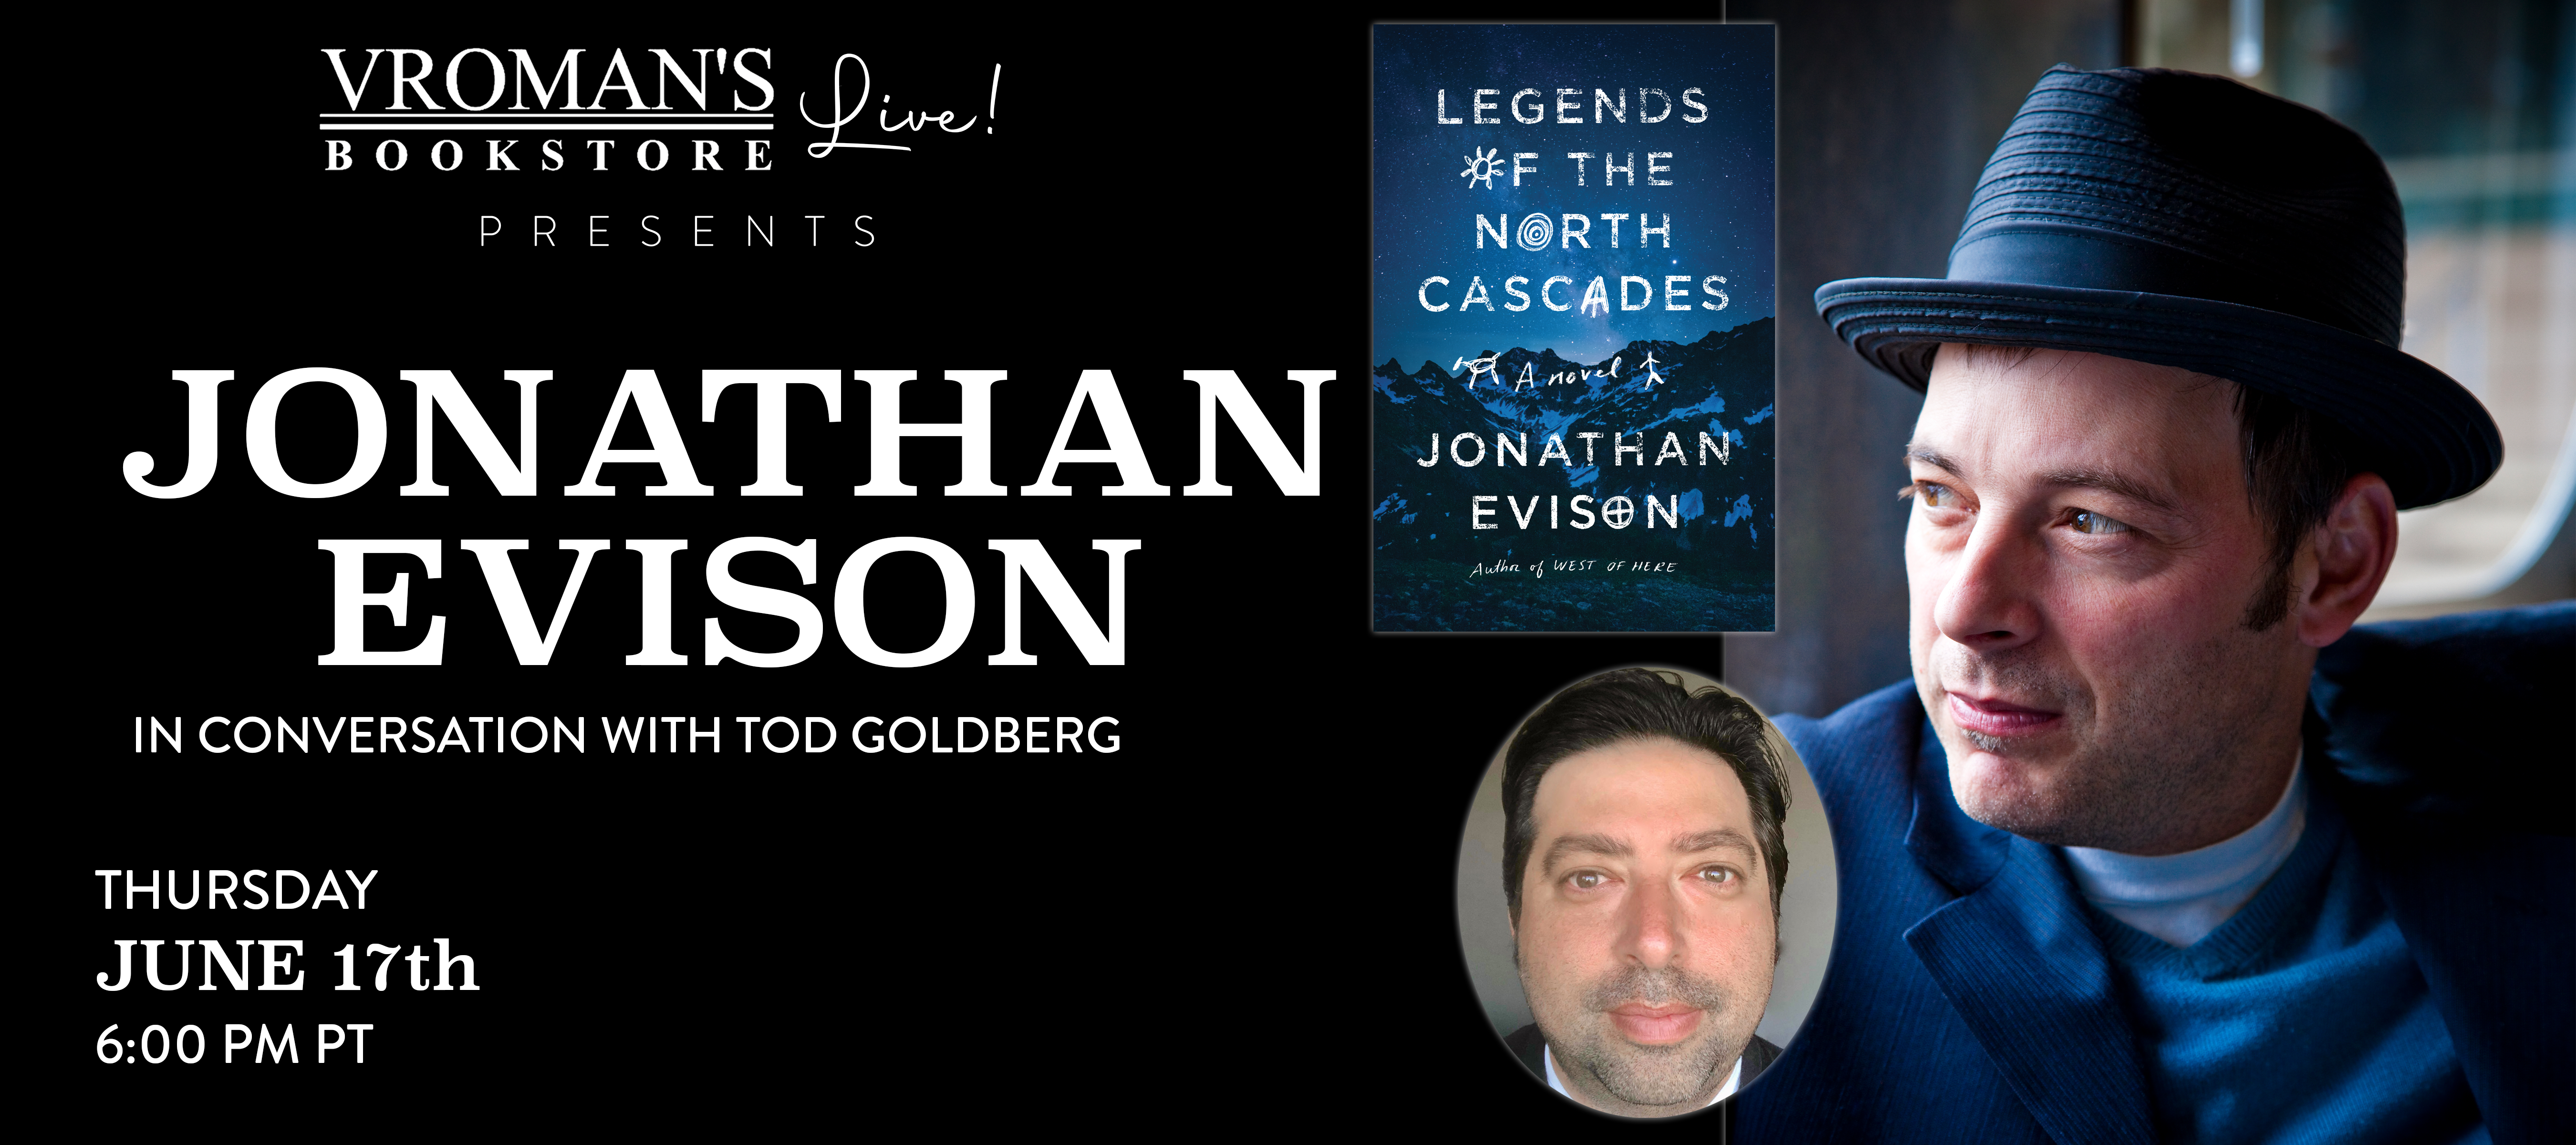 Vroman's Live - Jonathan Evison, in conversation with Tod Goldberg, discusses Legends of the North Cascades on Thursday, June 17th at 6pm on Crowdcast